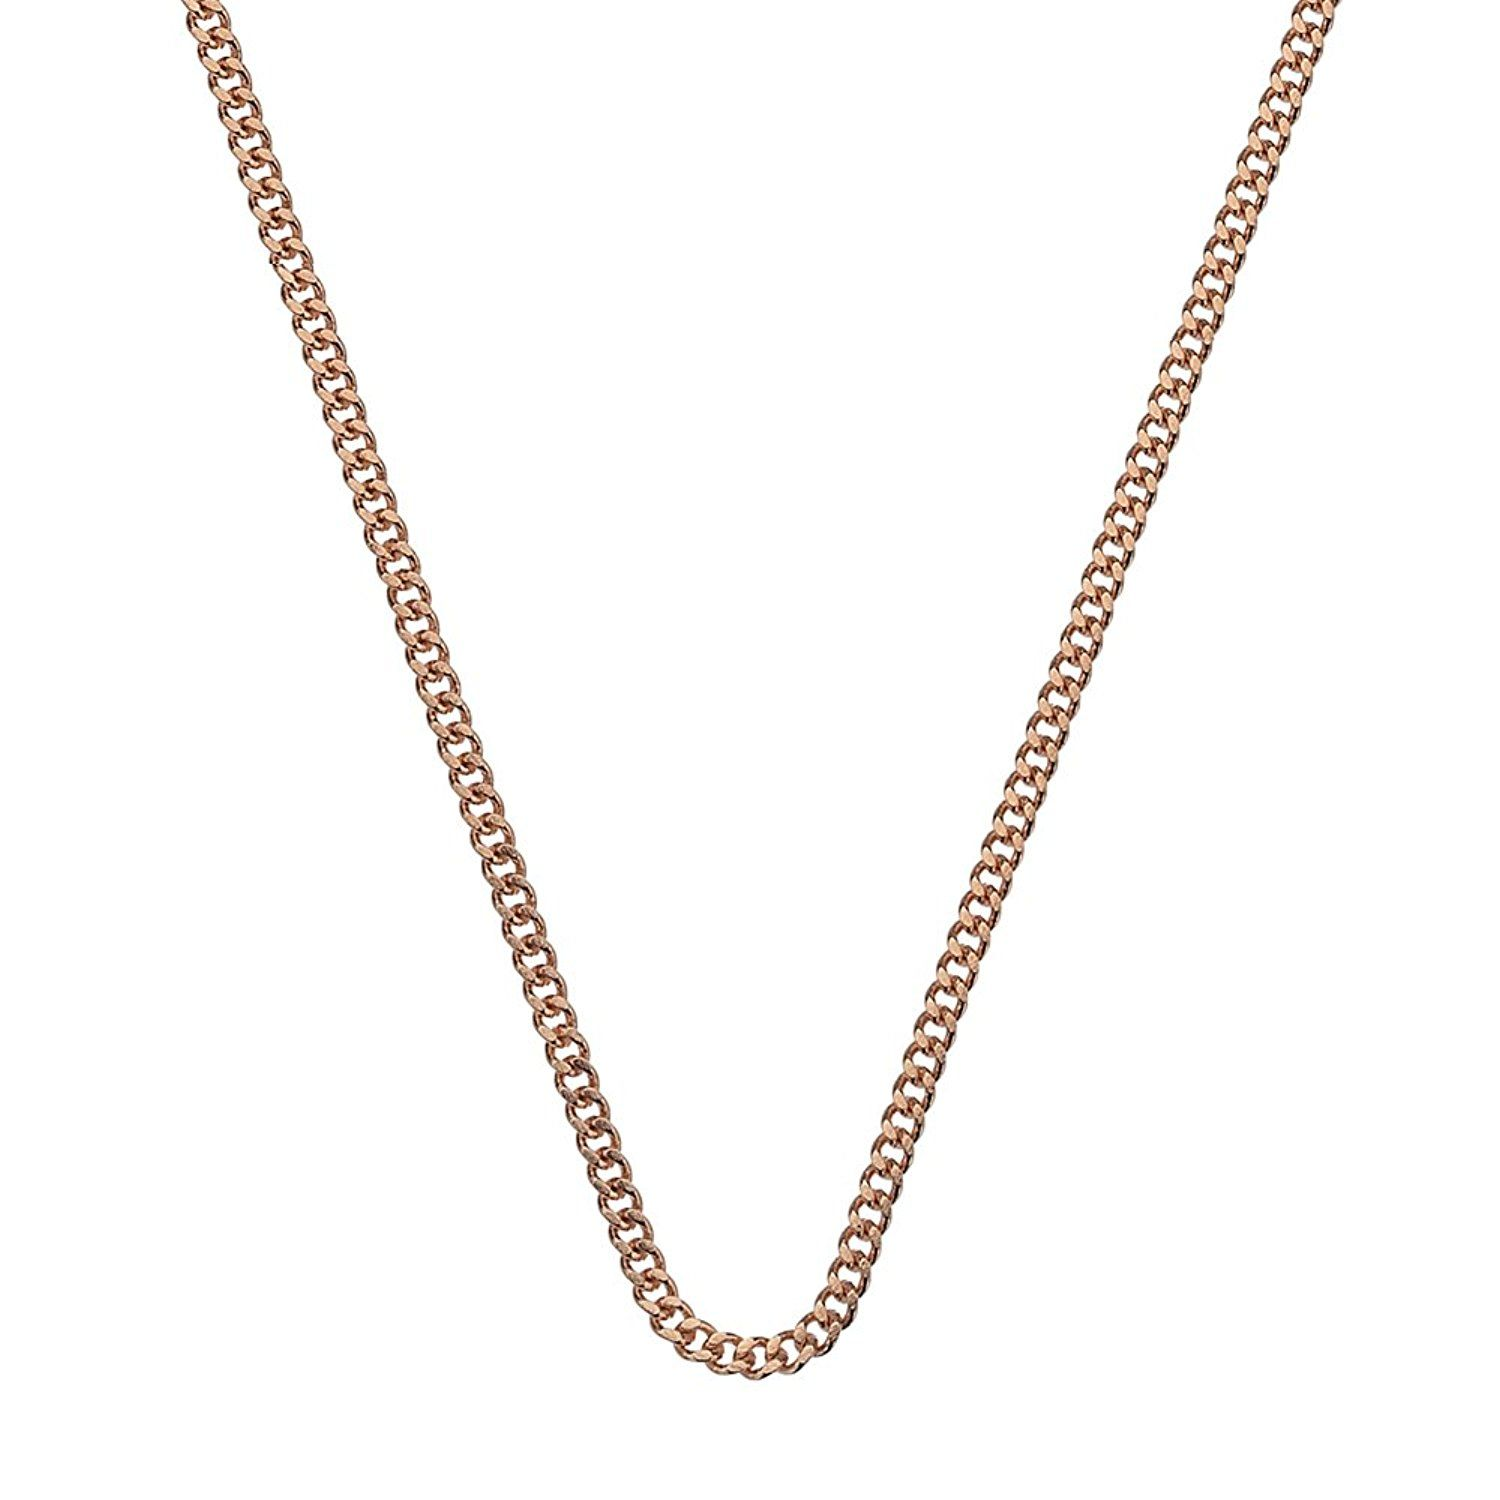 Emozioni Rose Gold Plated Sterling Silver Belcher Chain of 89cm tUDMNjKG